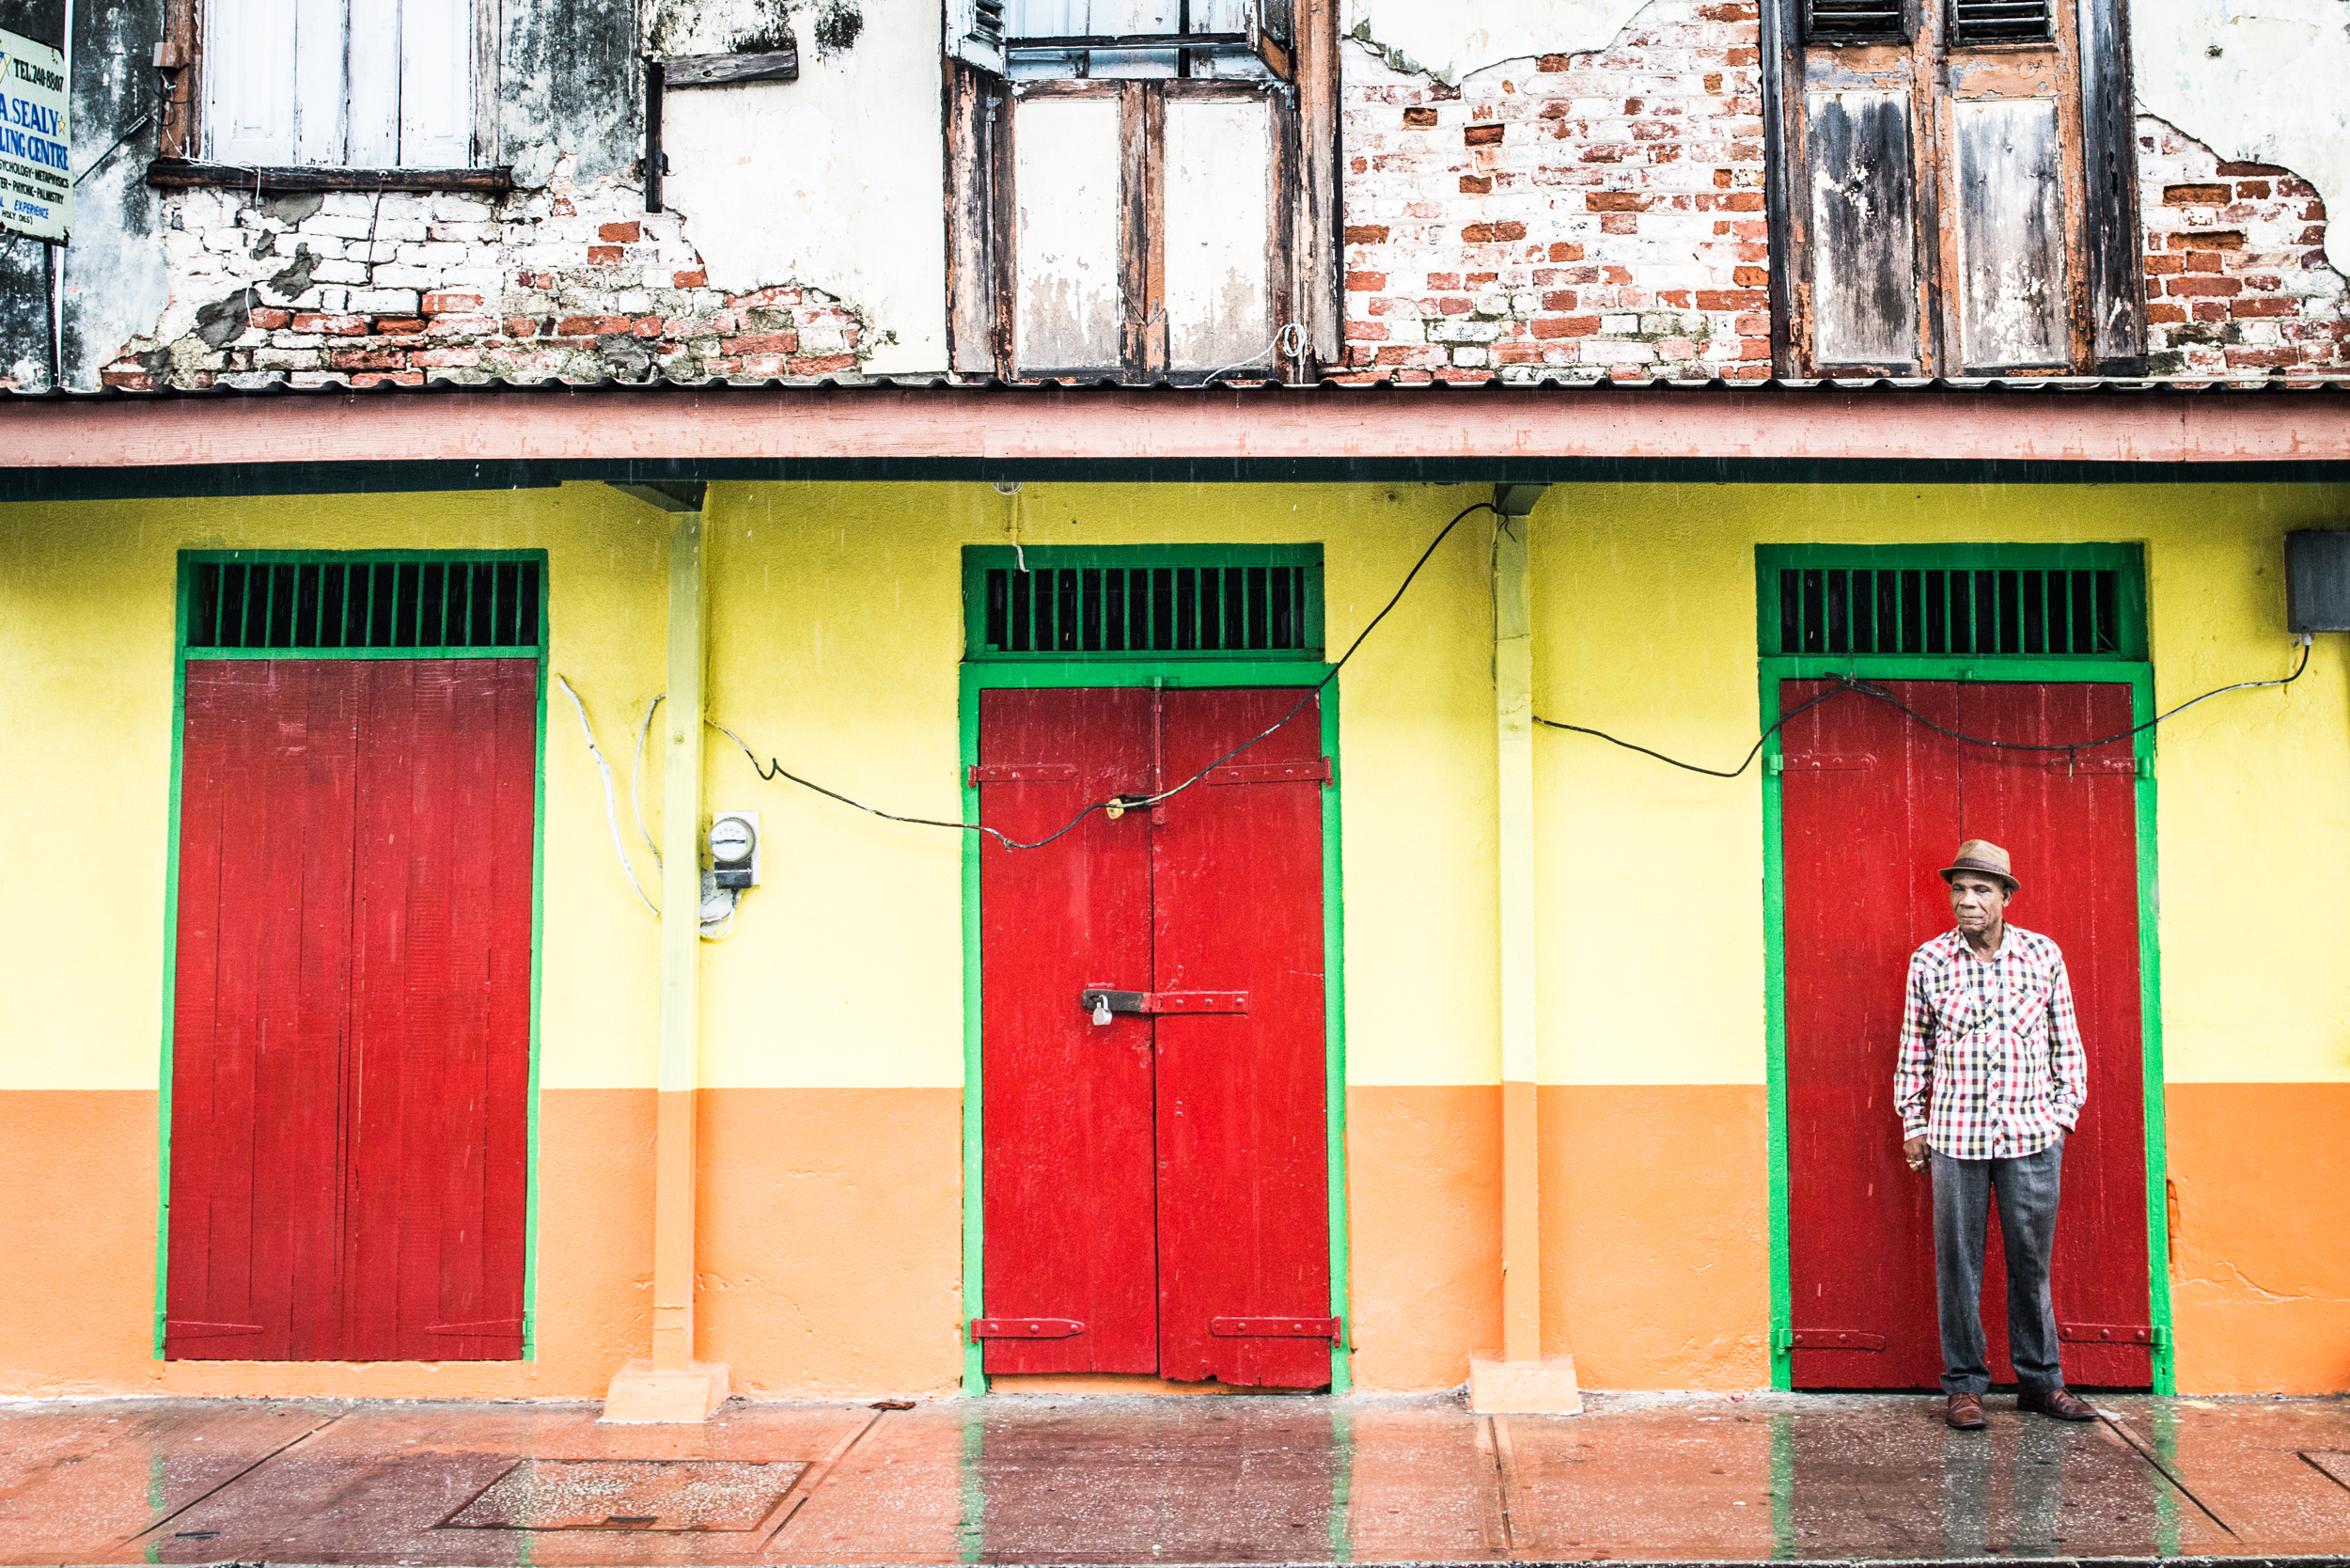 Man against colorful doors in Barbados - Travel - photo credit Nicola Bailey.jpg